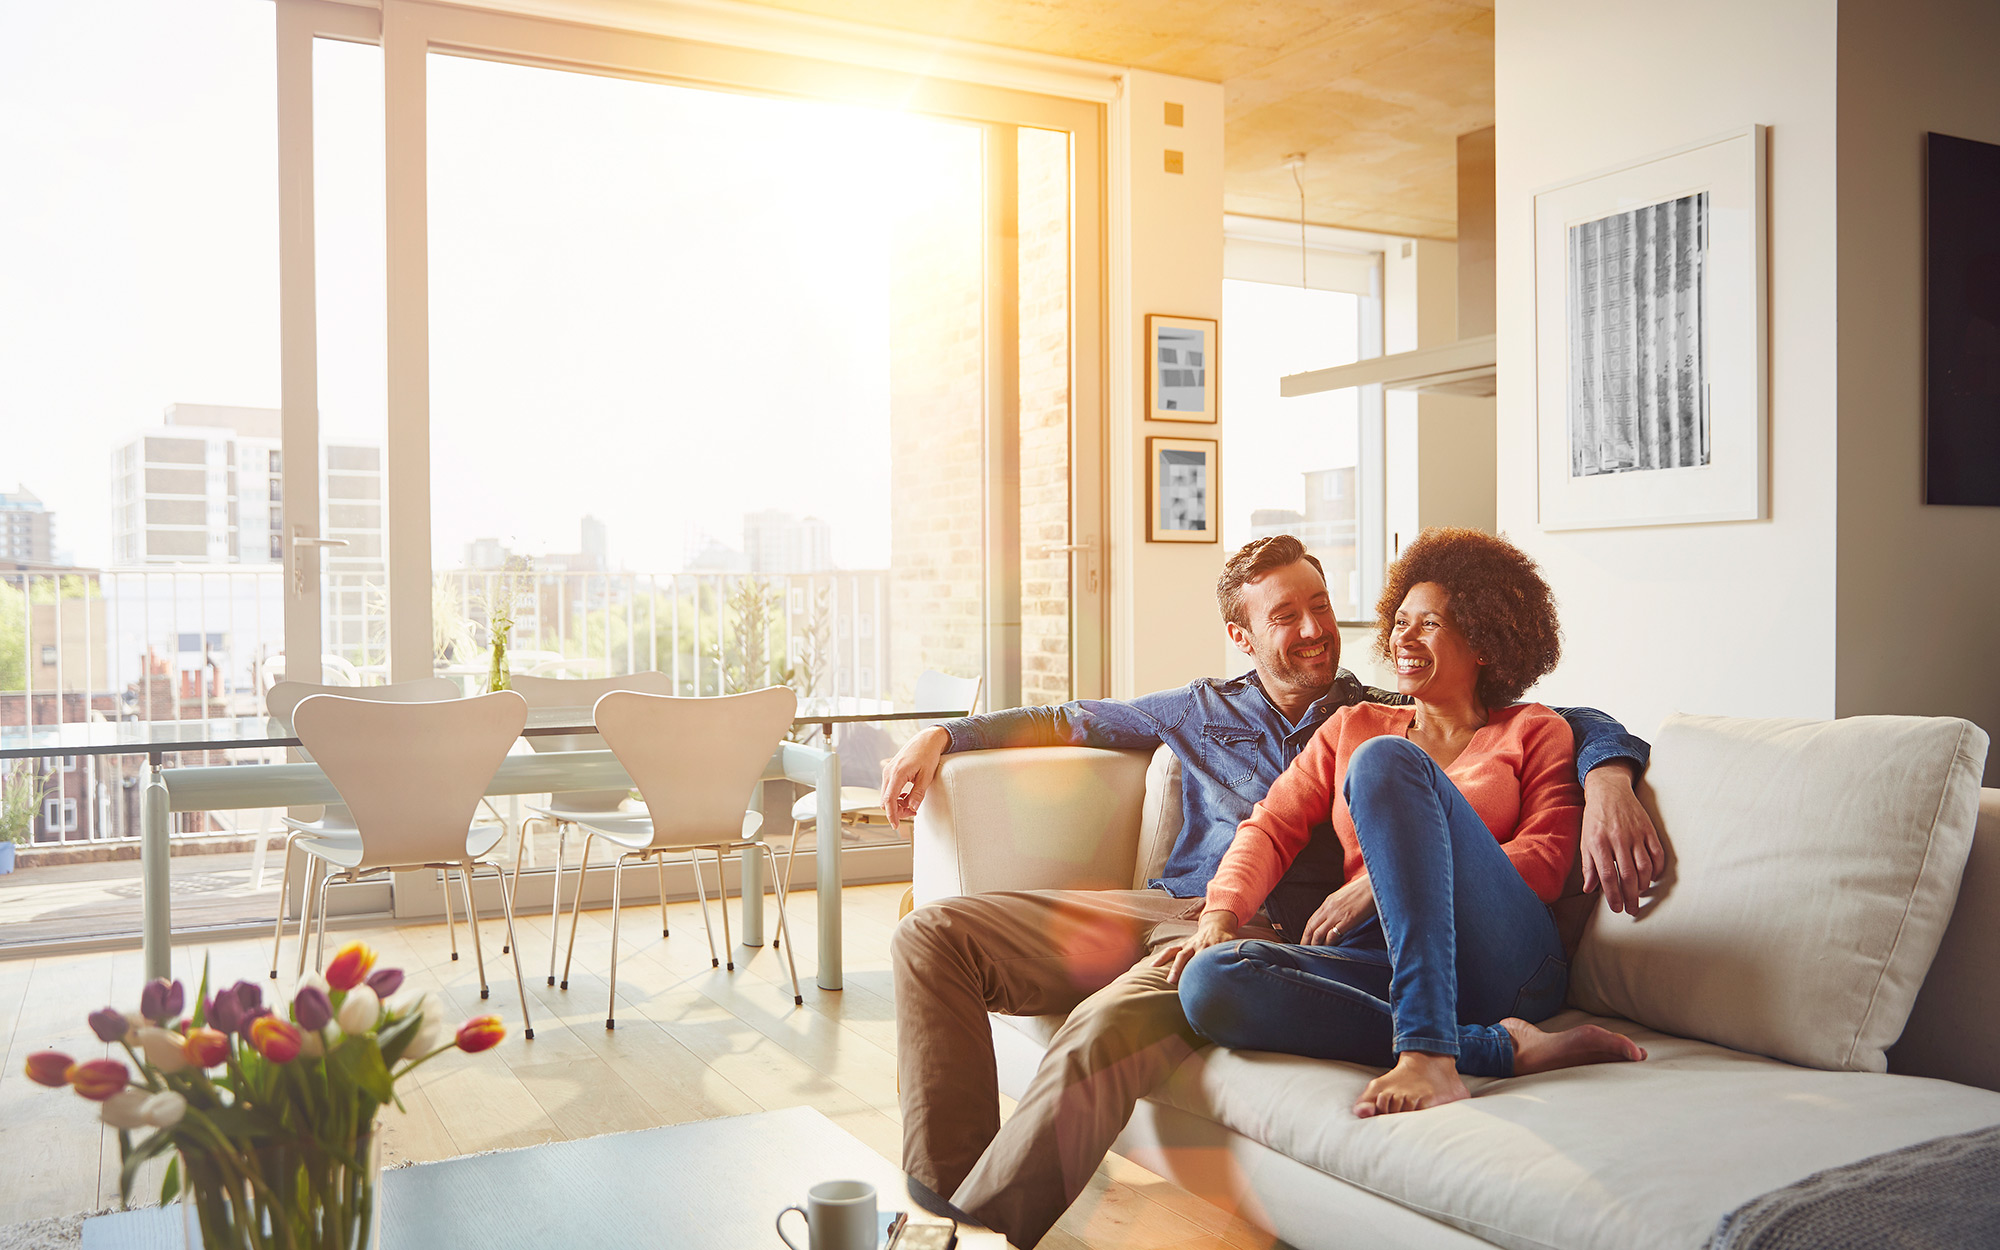 Airbnb Etiquette: Do I Have to Hang Out With My Airbnb Host